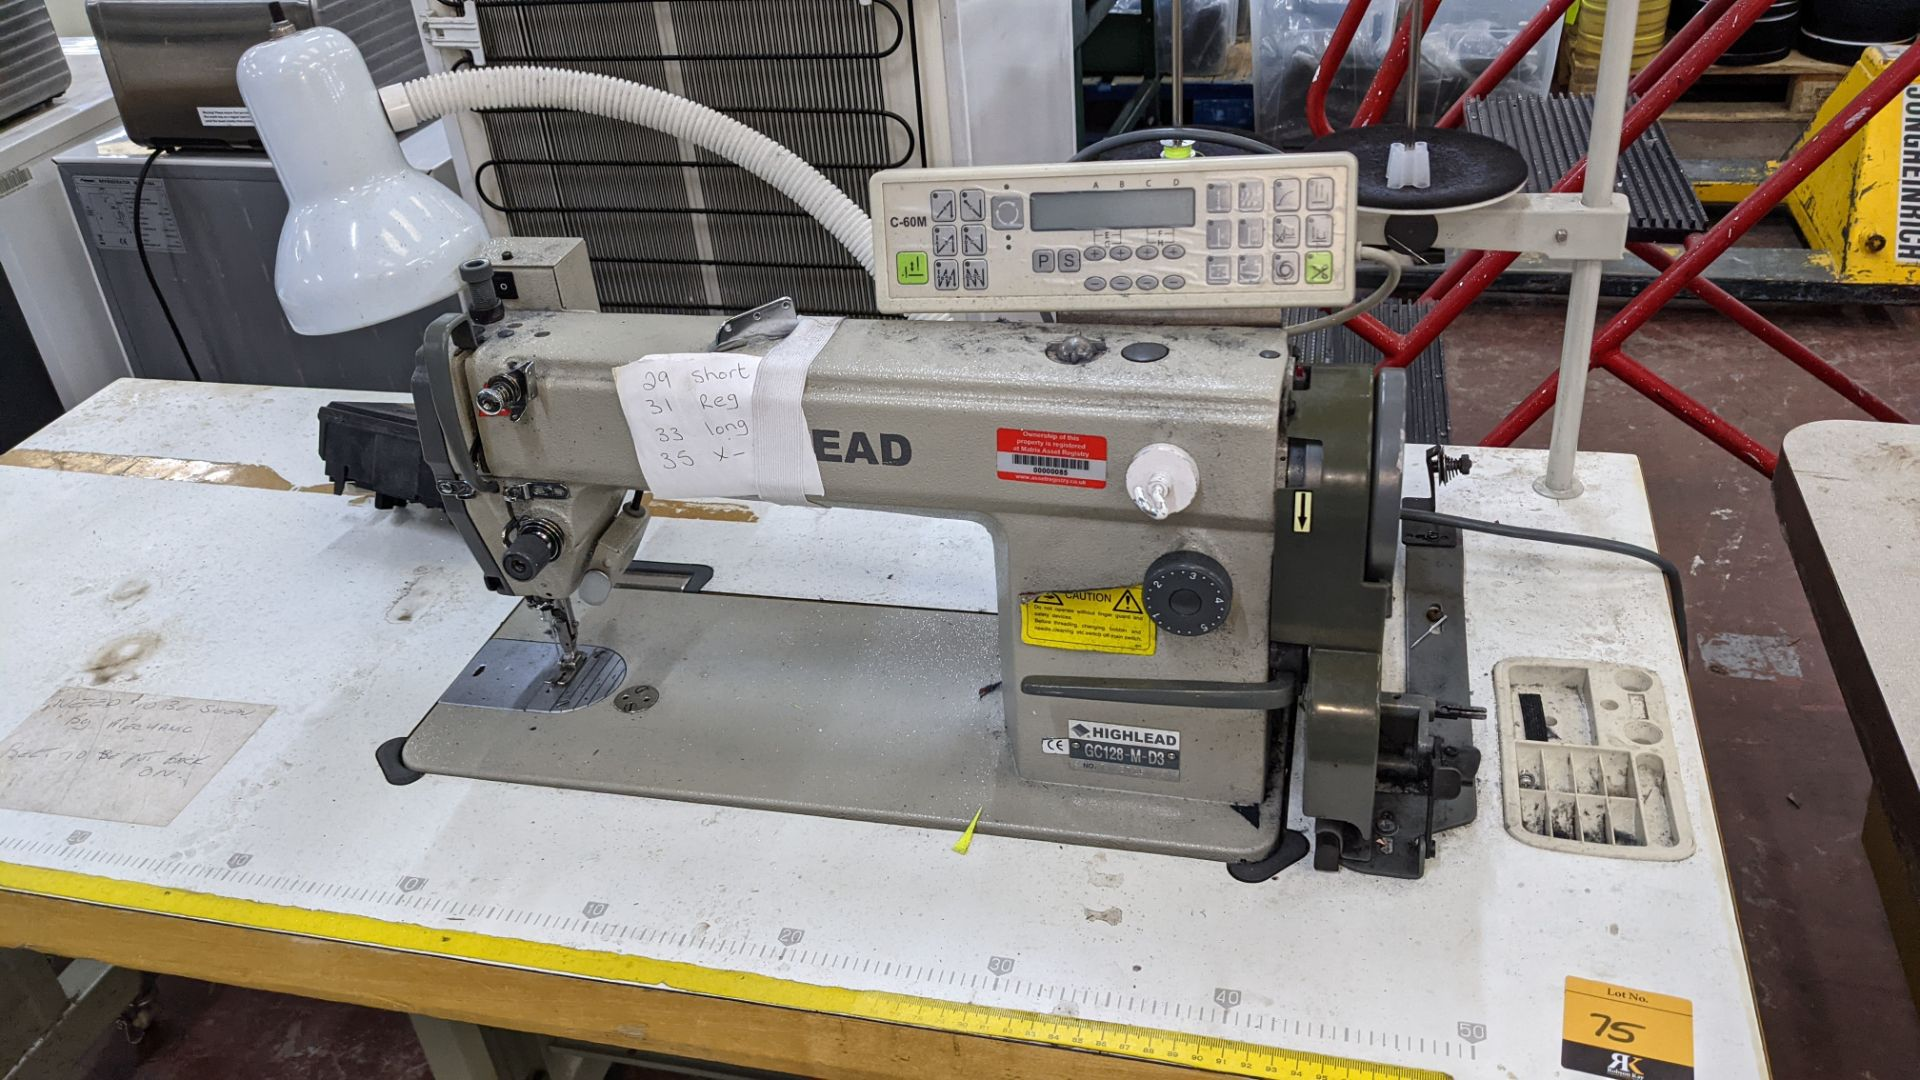 Highlead model GC128-M-D3 sewing machine with model C-60M digital controller - Image 5 of 17